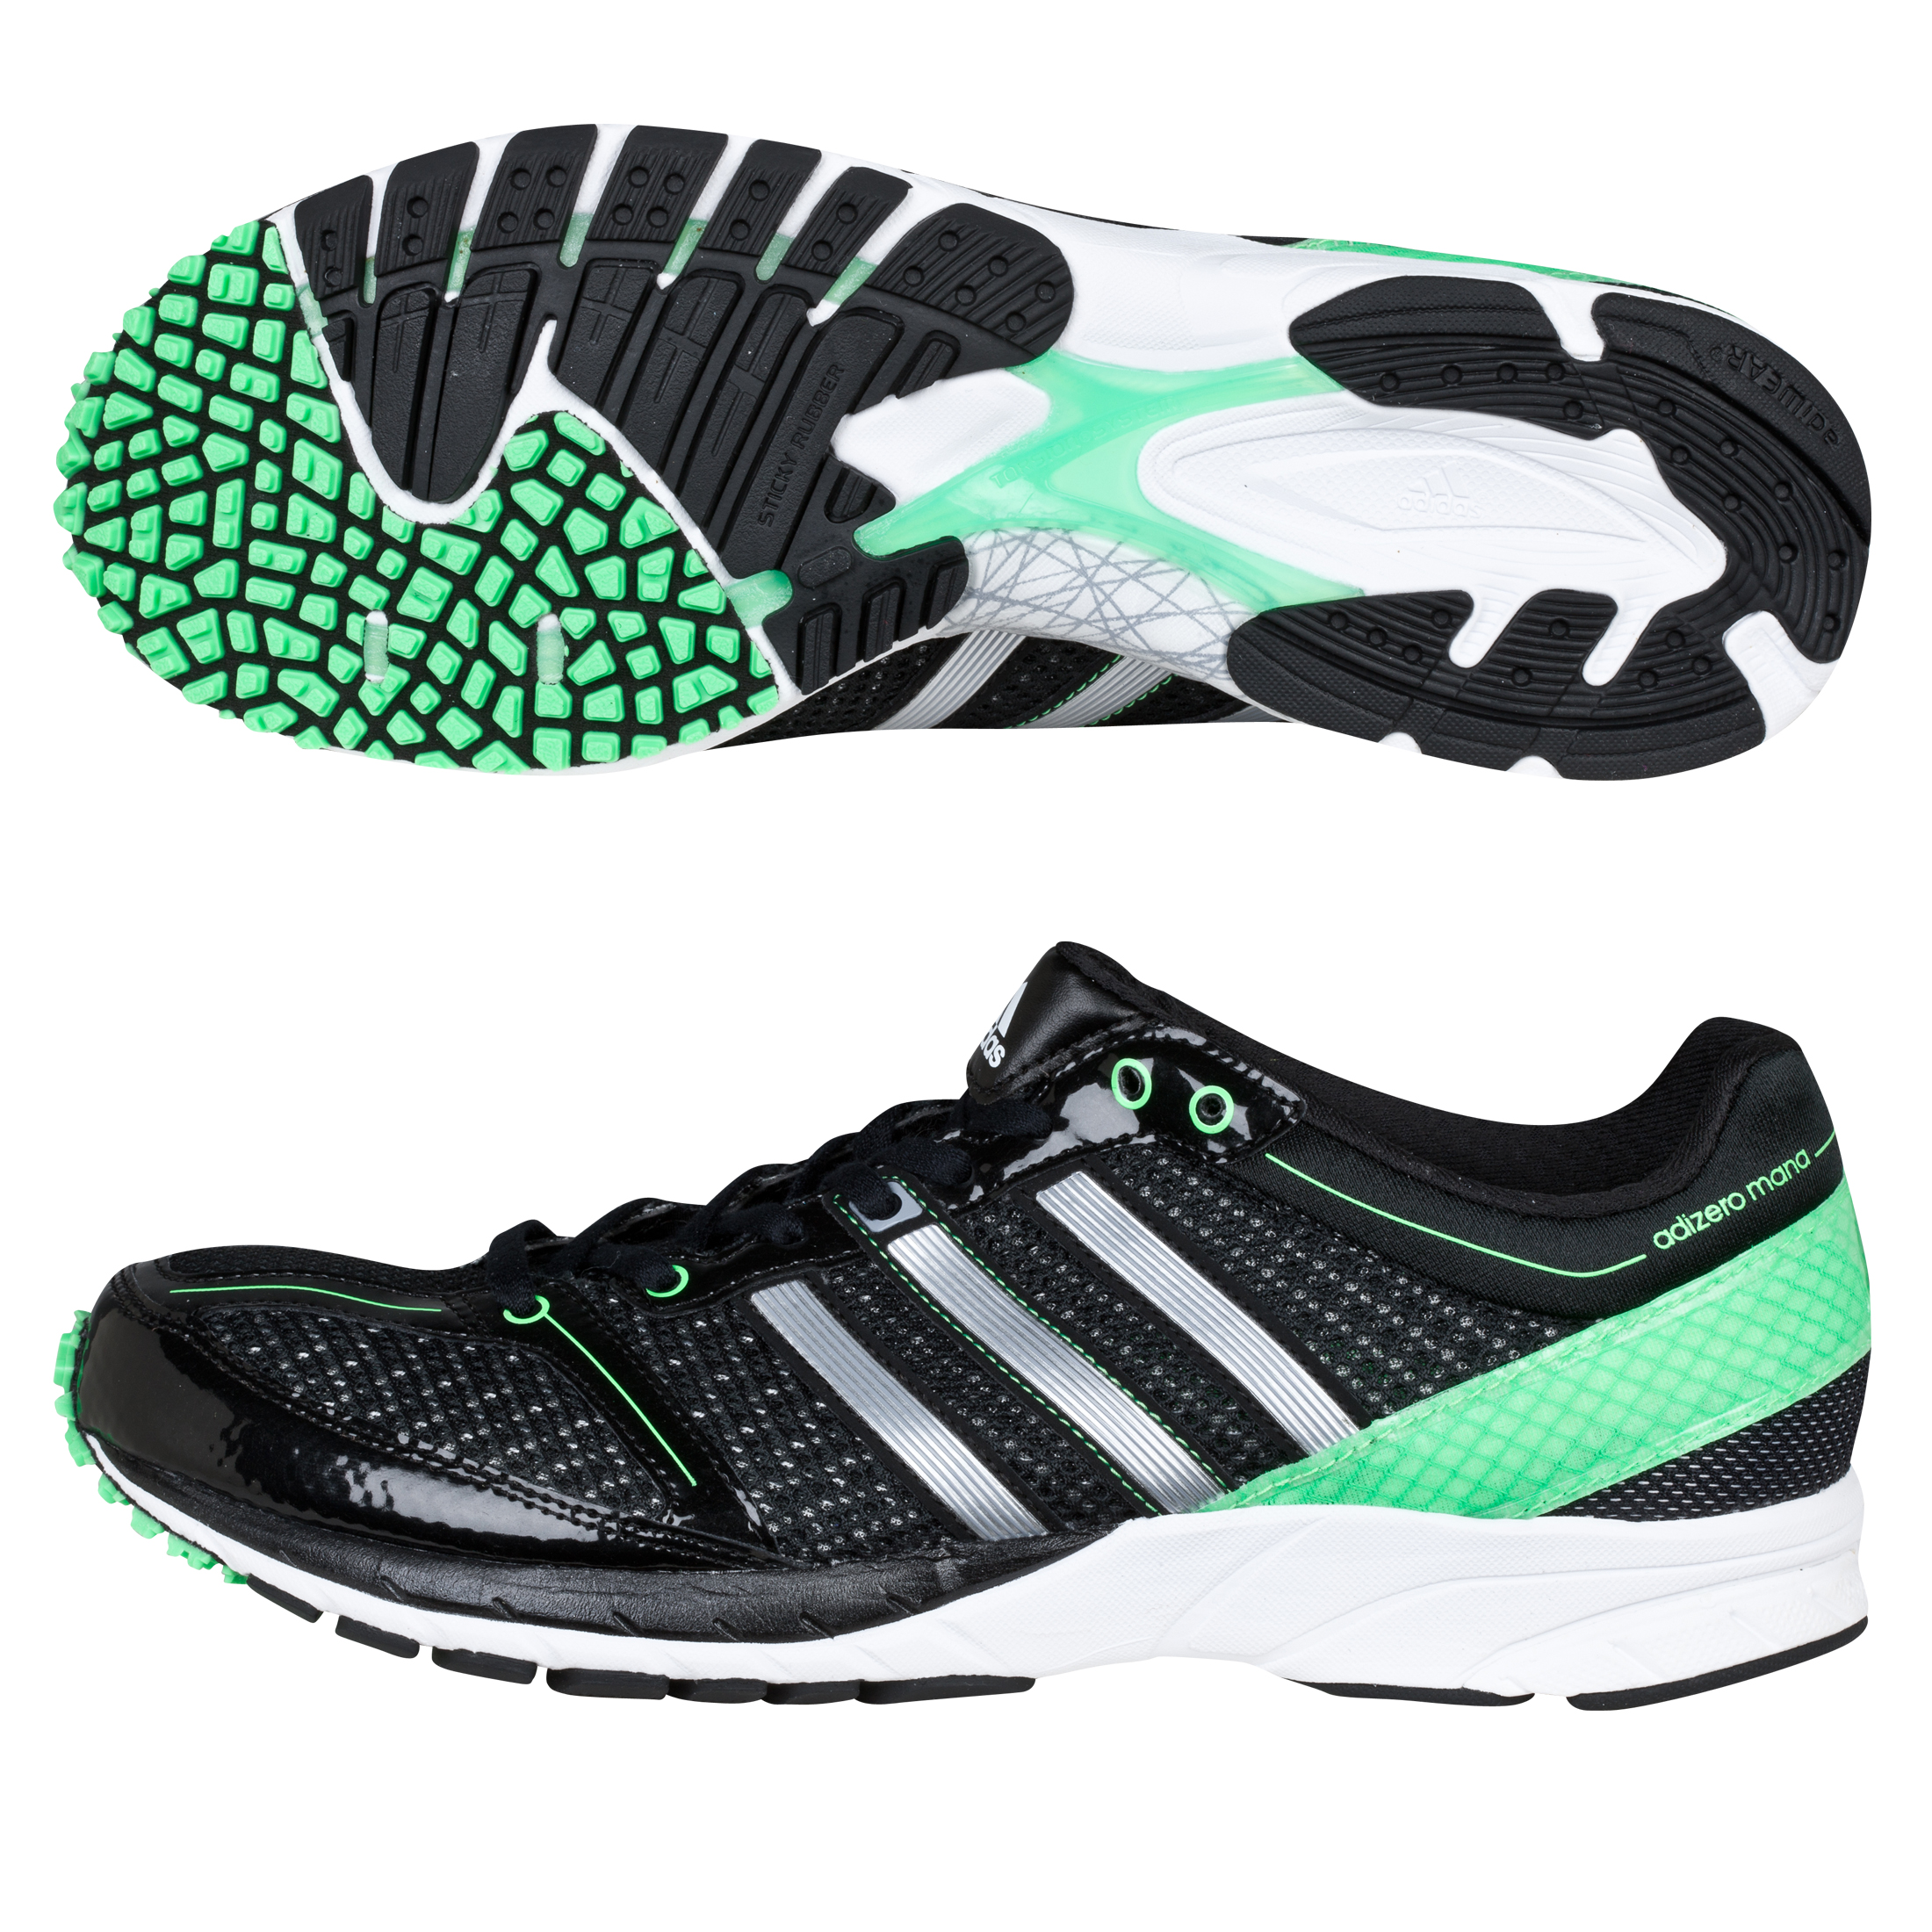 Adidas Adizero Mana 7 Trainers - Black/Metallic Silver/Black